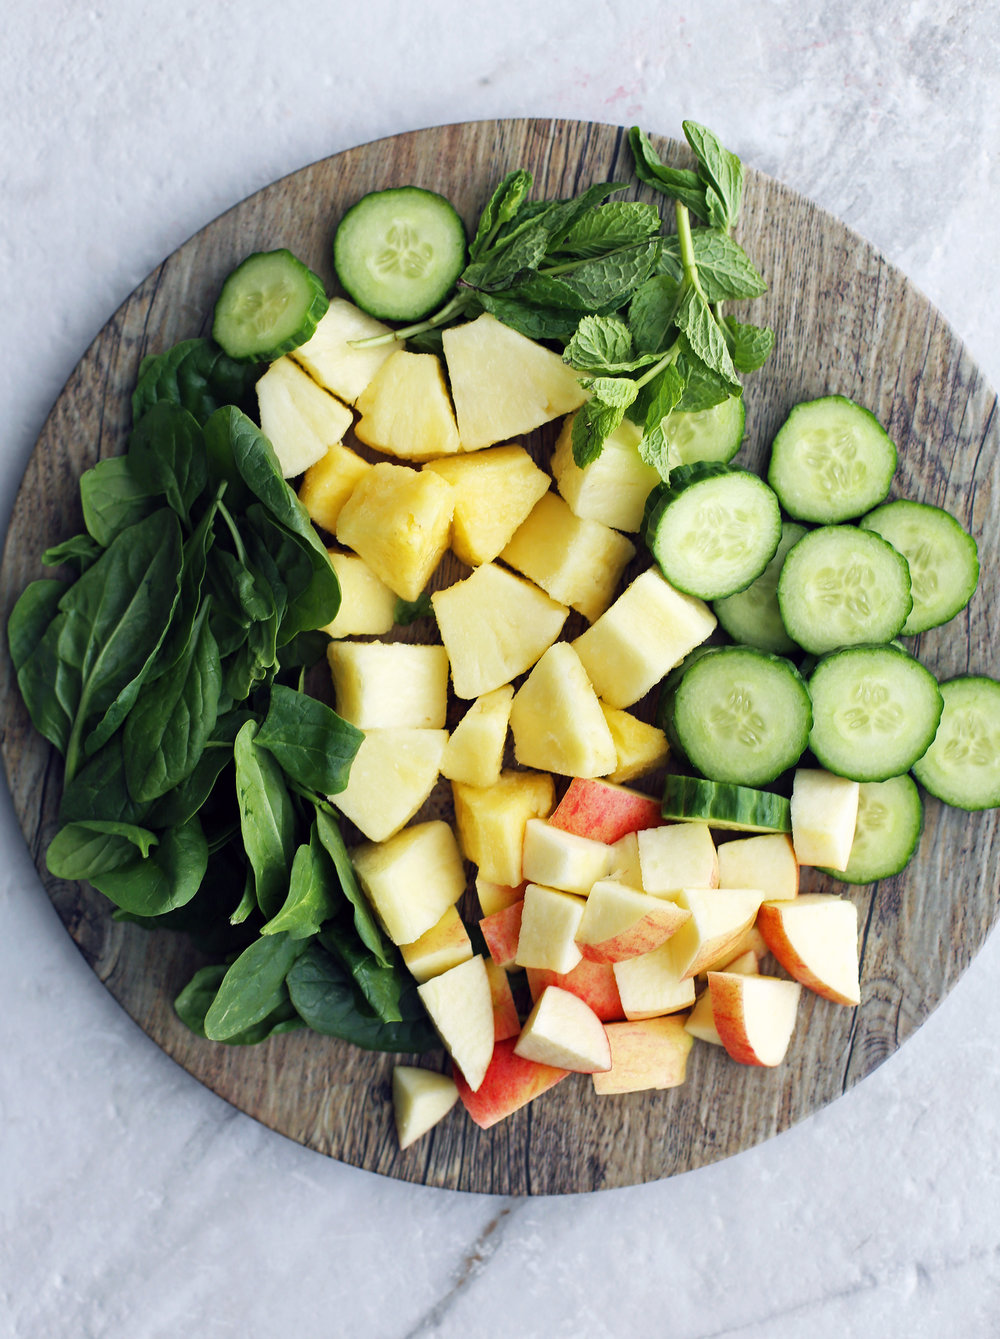 A large wooden platter contained chopped pineapples, apples, cucumber, mint and baby spinach.